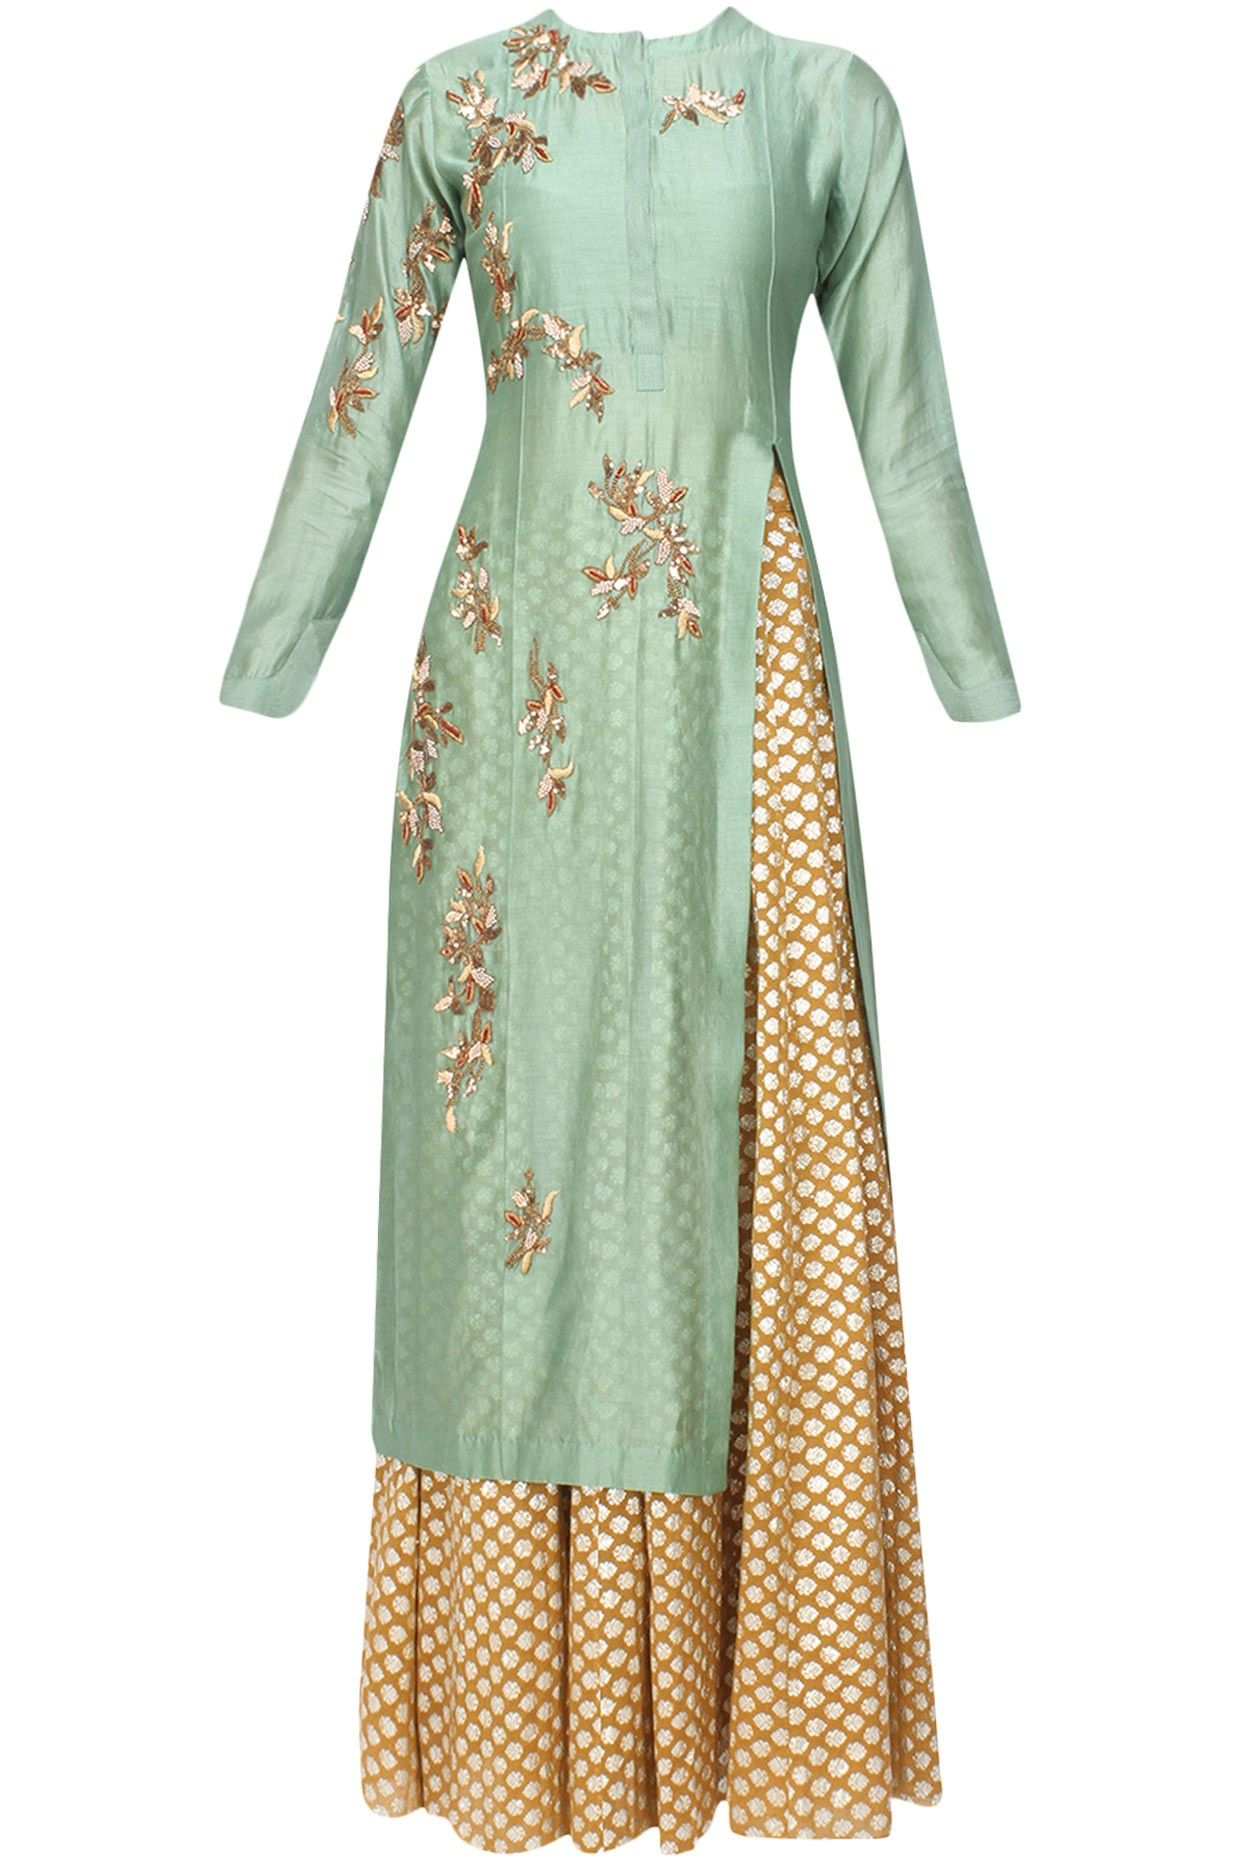 6e54e5207f Joy Mitra pistachio green chanderi silk long kurta with gold lengha and  floral embroidery work